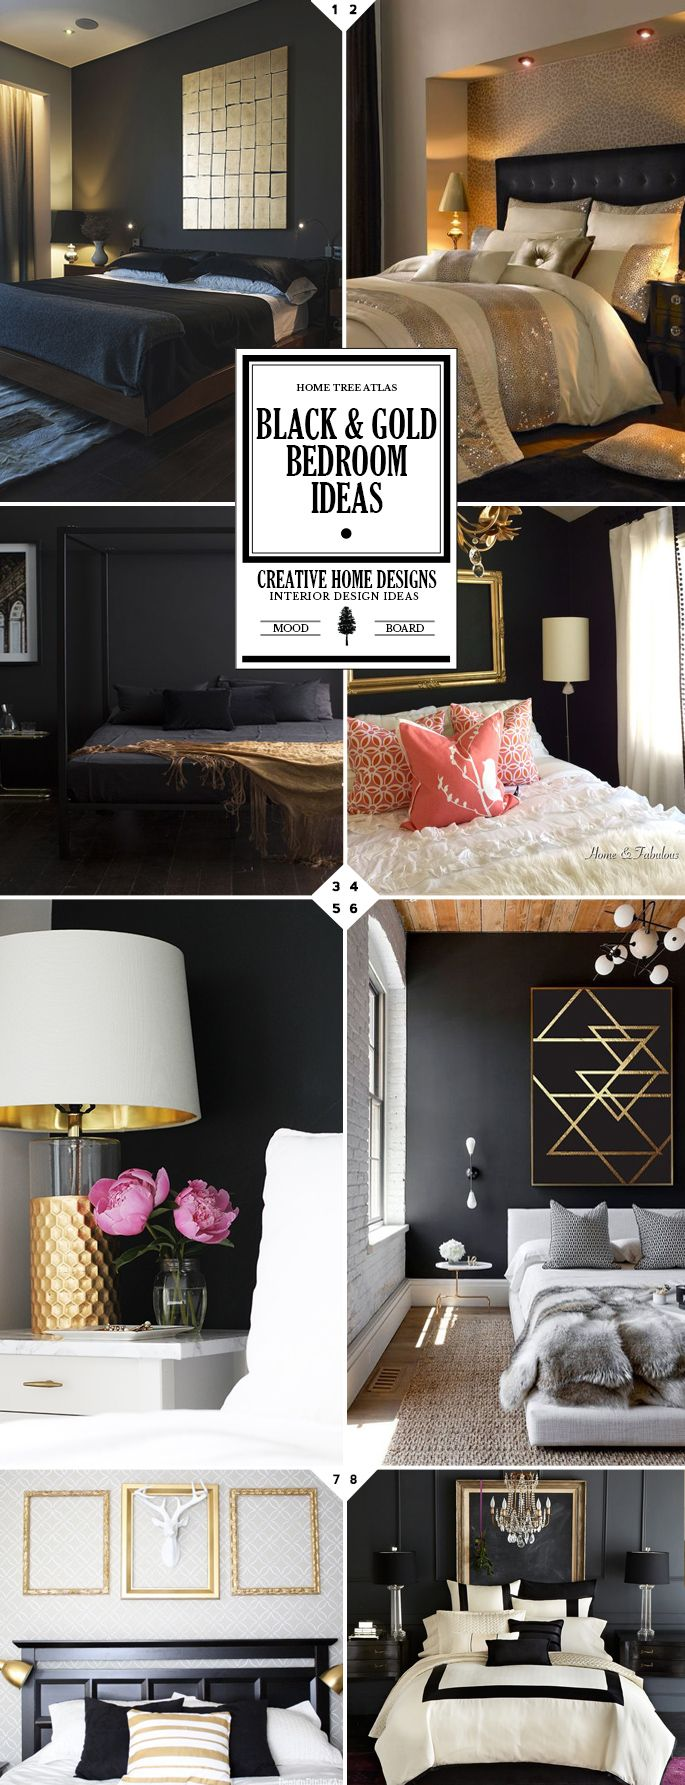 Style guide black and gold bedroom ideas housse pinterest schlafzimmer gem tliches - Chambre a coucher atlas ...